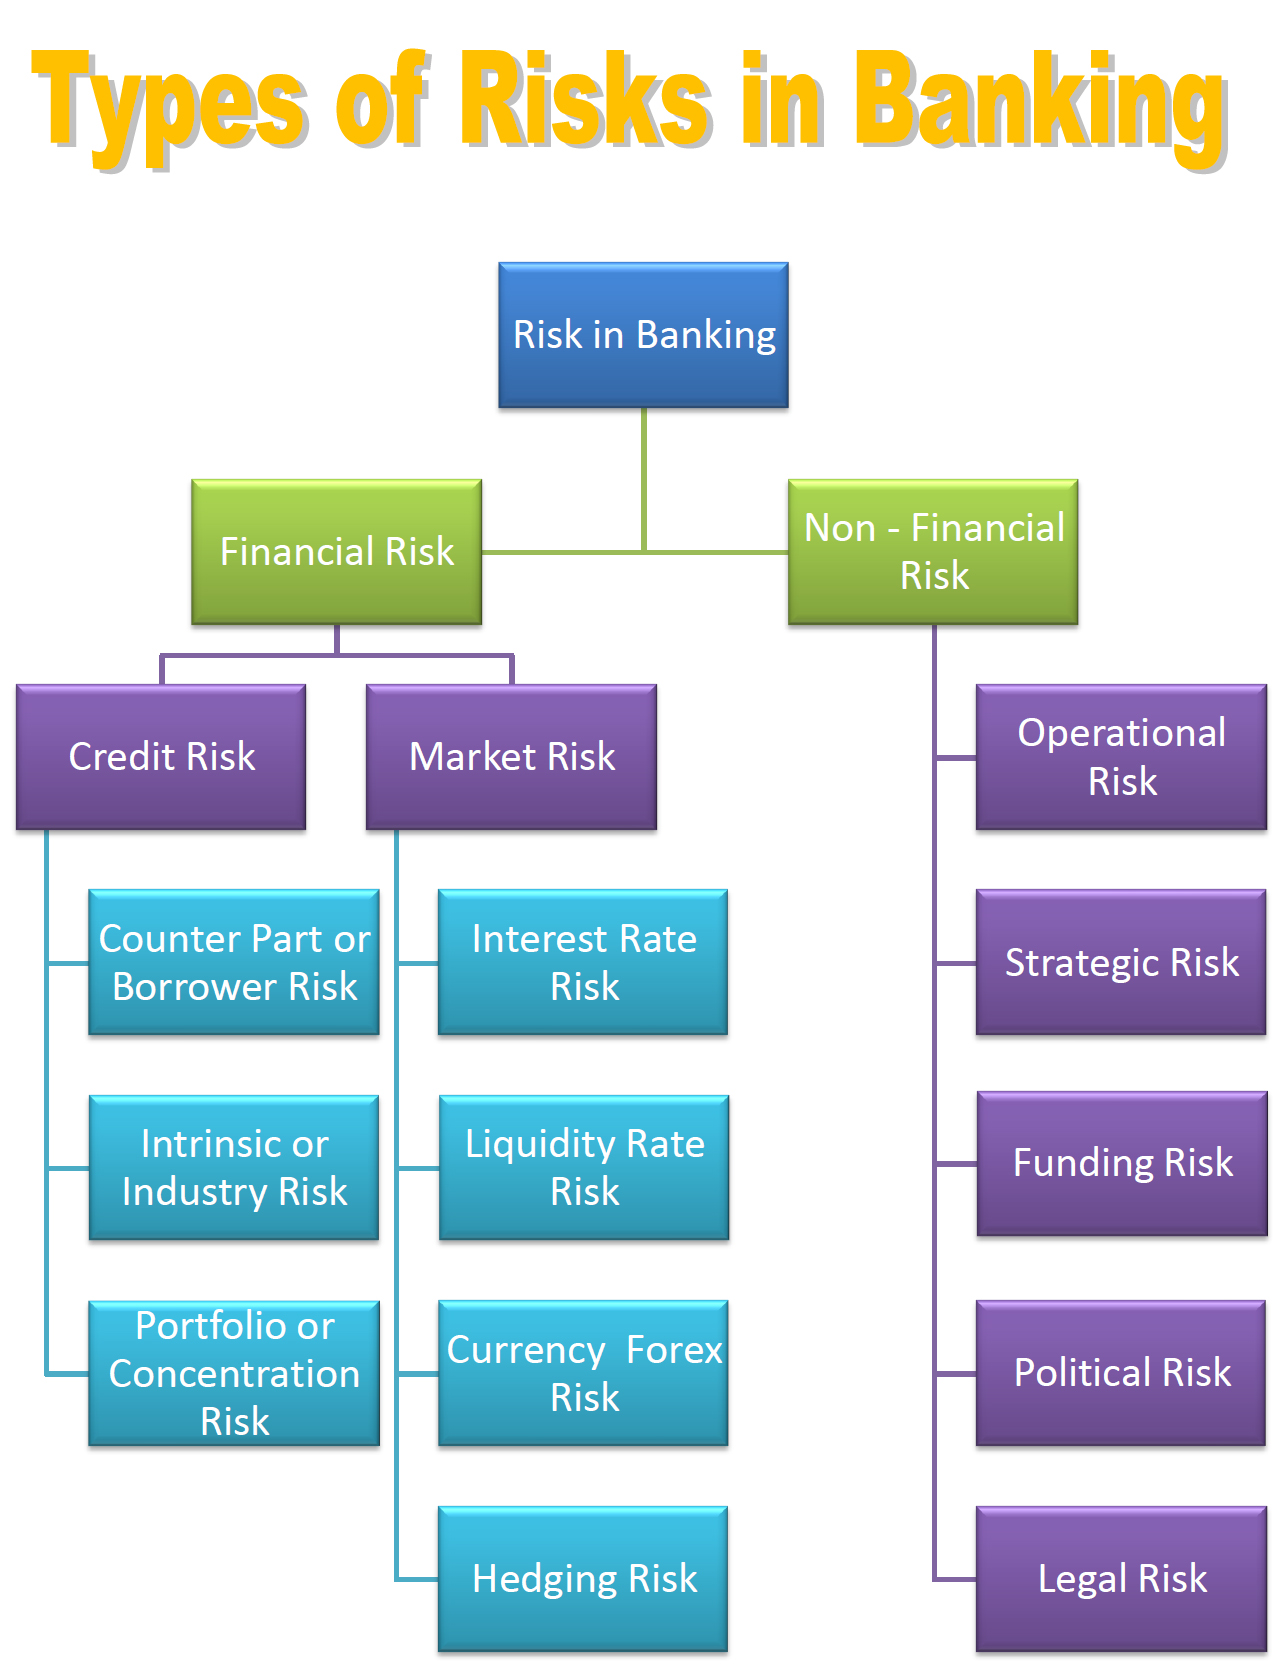 Project Management Flow Chart: Risk in Banking.jpg - Wikimedia Commons,Chart